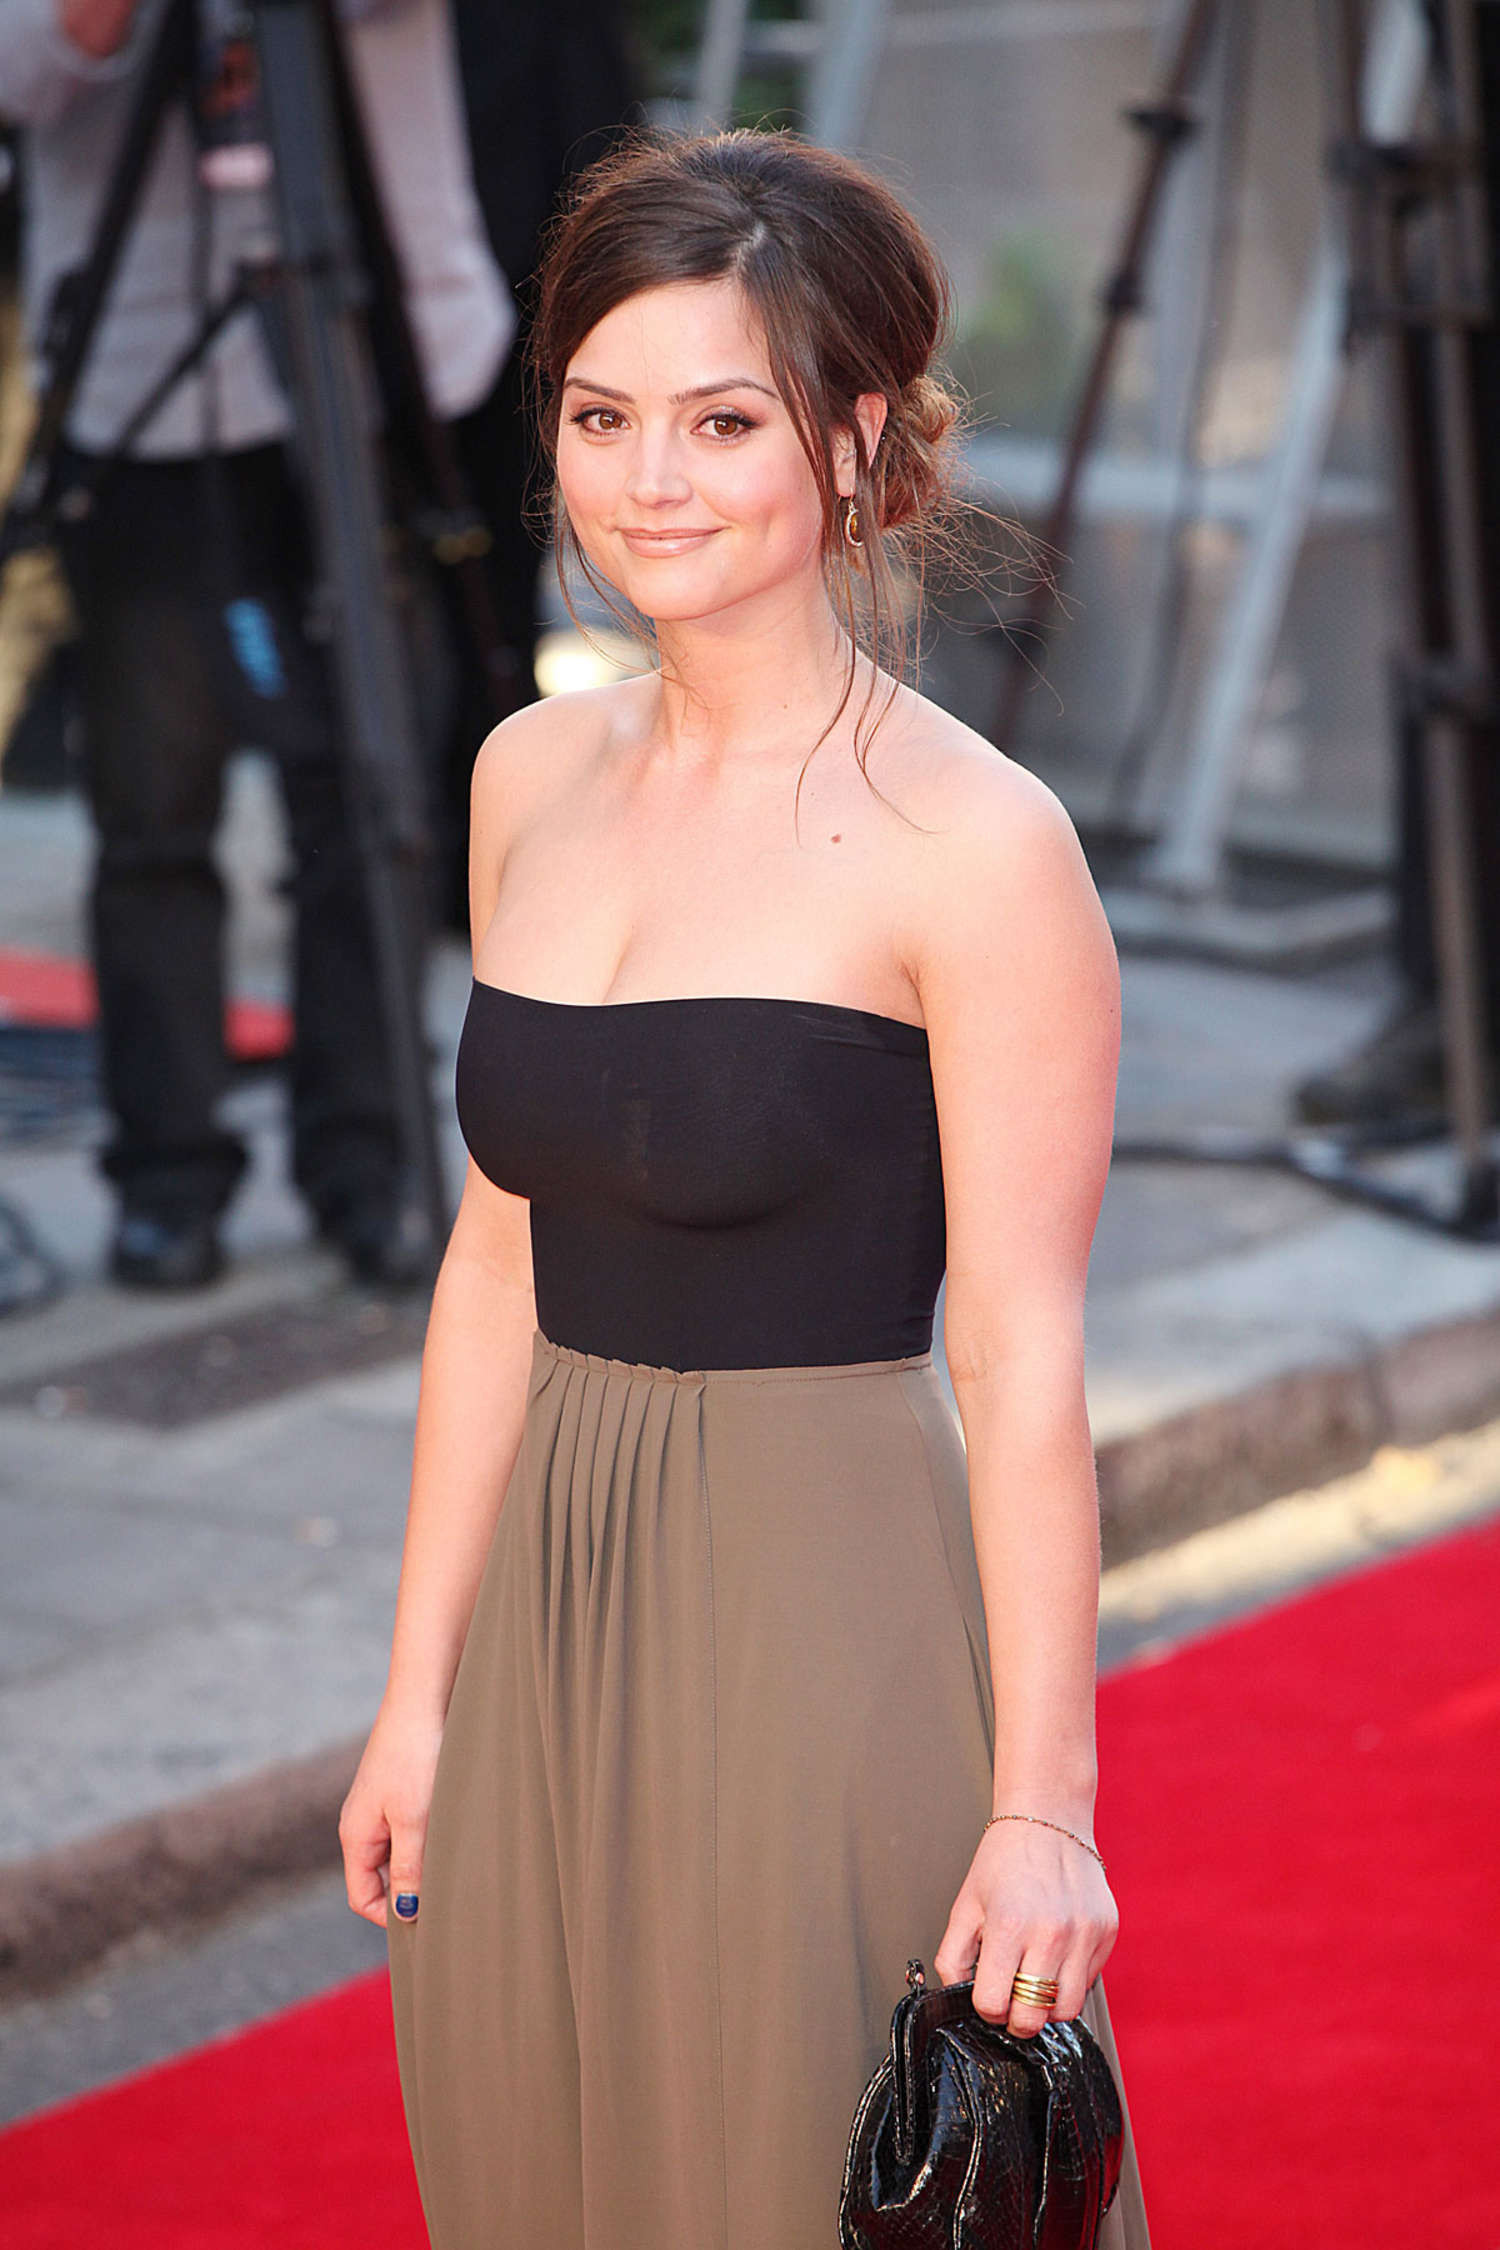 Discussion on this topic: Marjana Chowdhury, jenna-coleman/